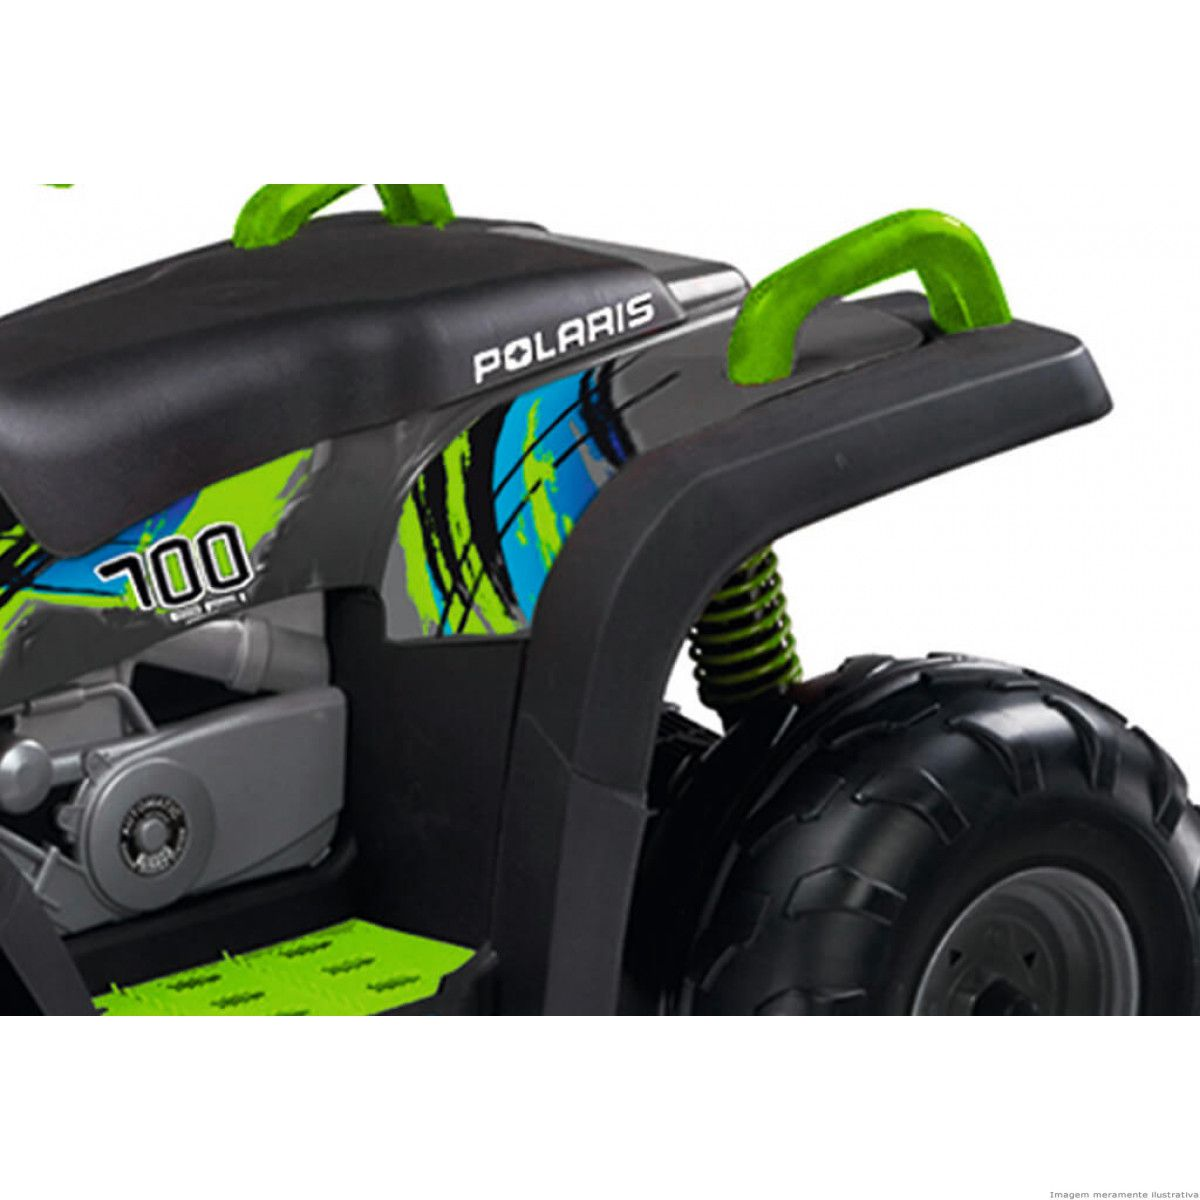 Quadriciclo Elétrico Peg-pérego Polaris Sportsman 700 Twin 12v Lime